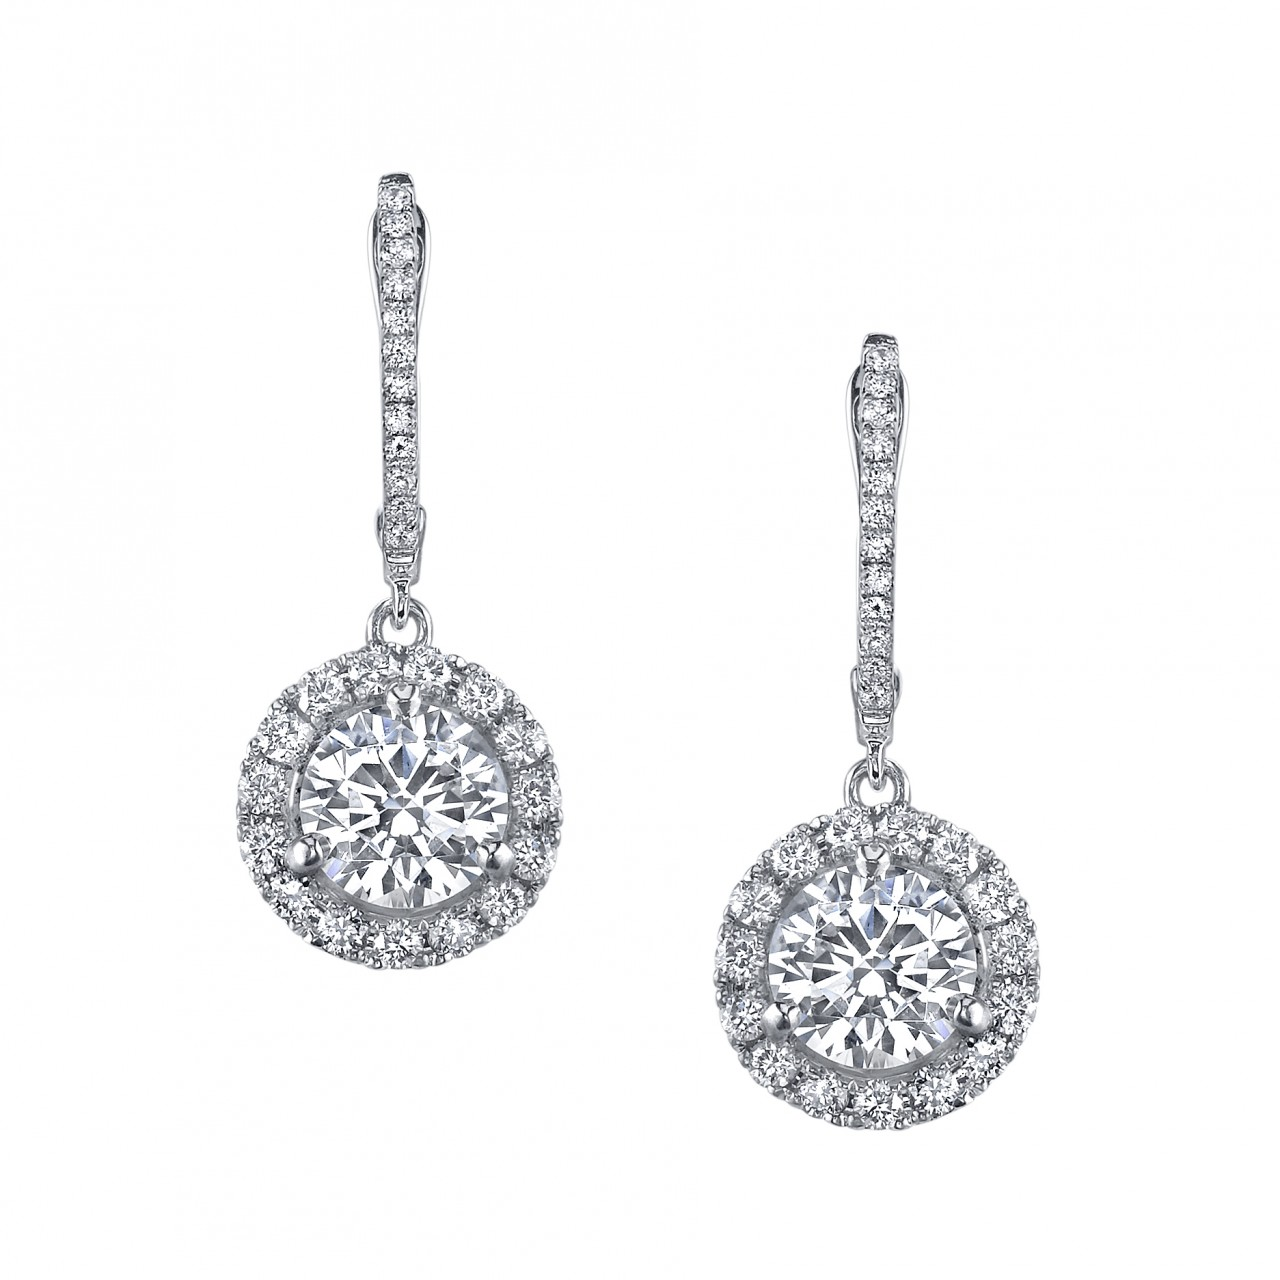 Micropave halo dangle earrings